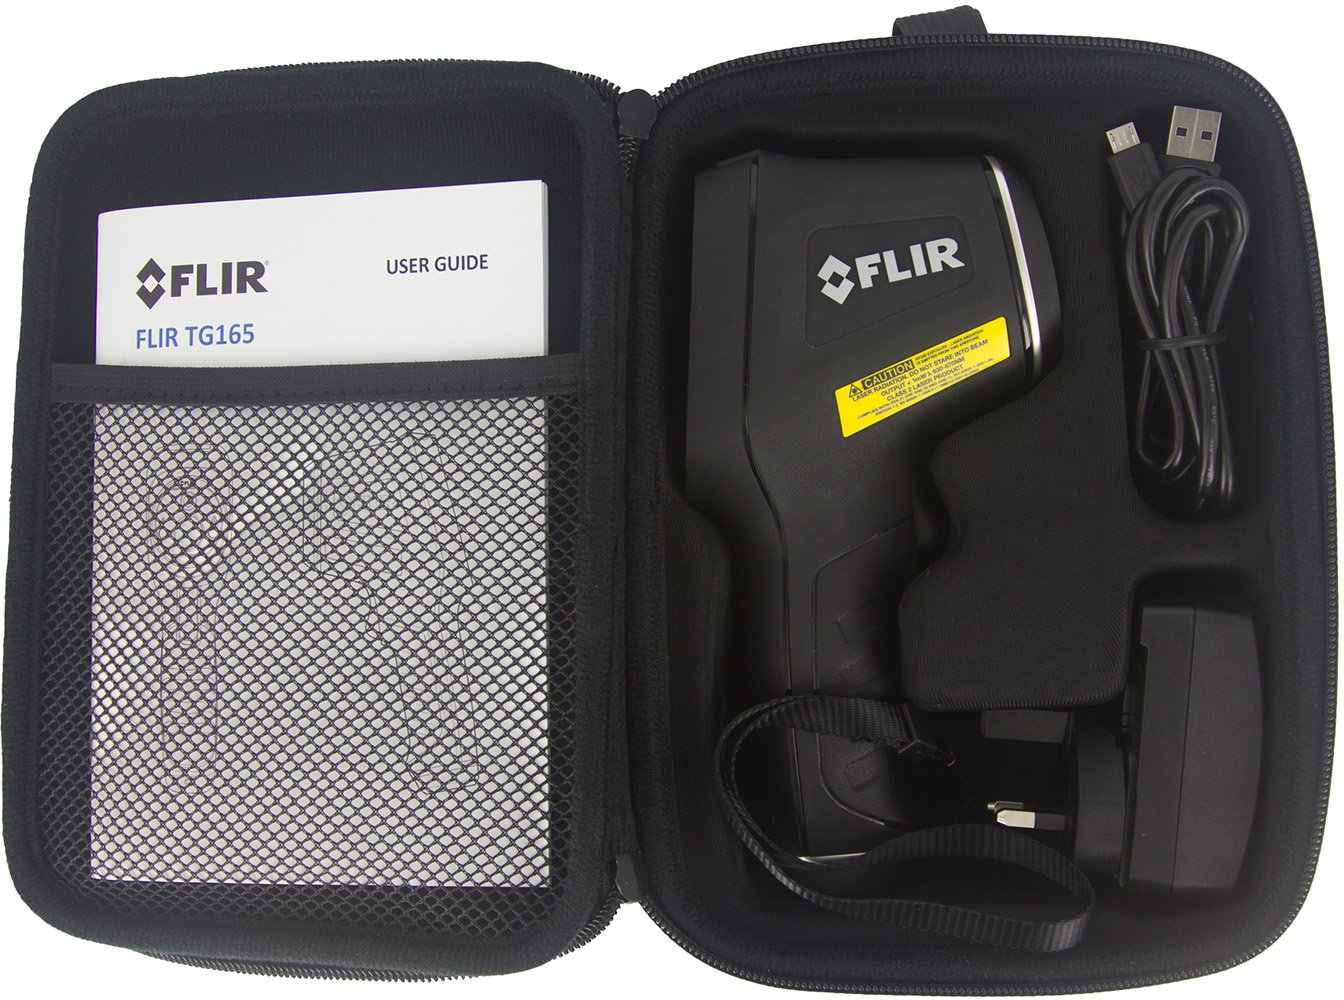 FLIR TA13 Protective Case for TG165 and TG167 Thermal Imagers